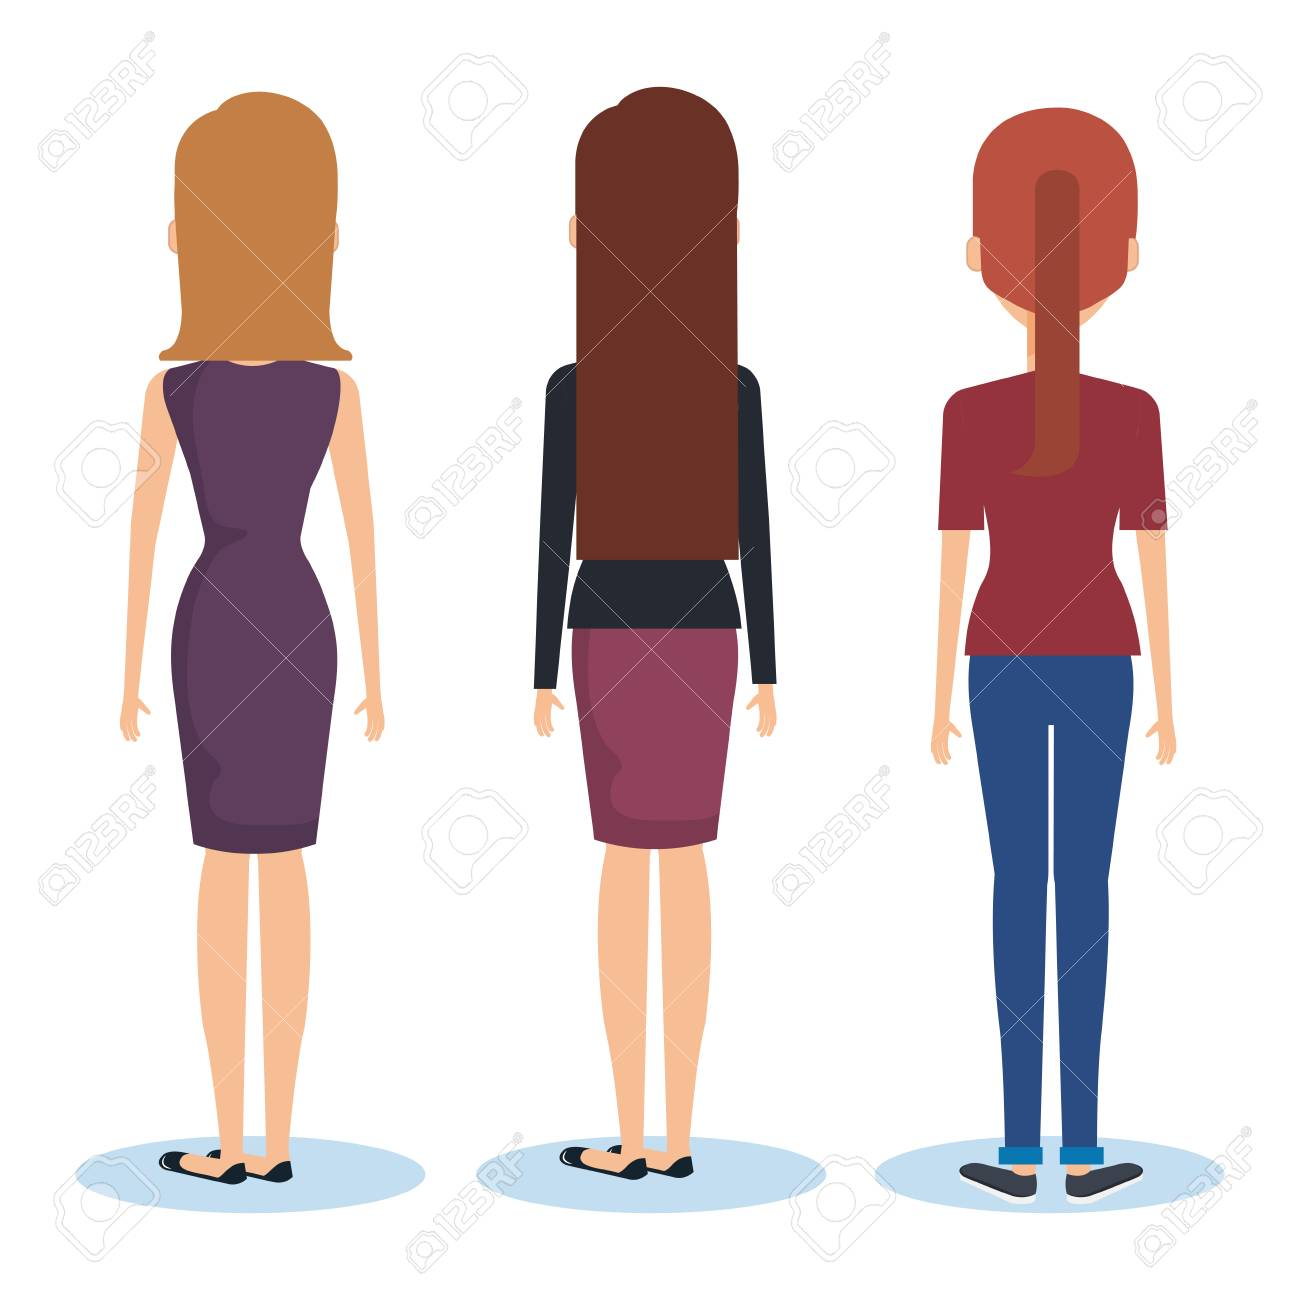 Group of young women facing the back vector illustration design.